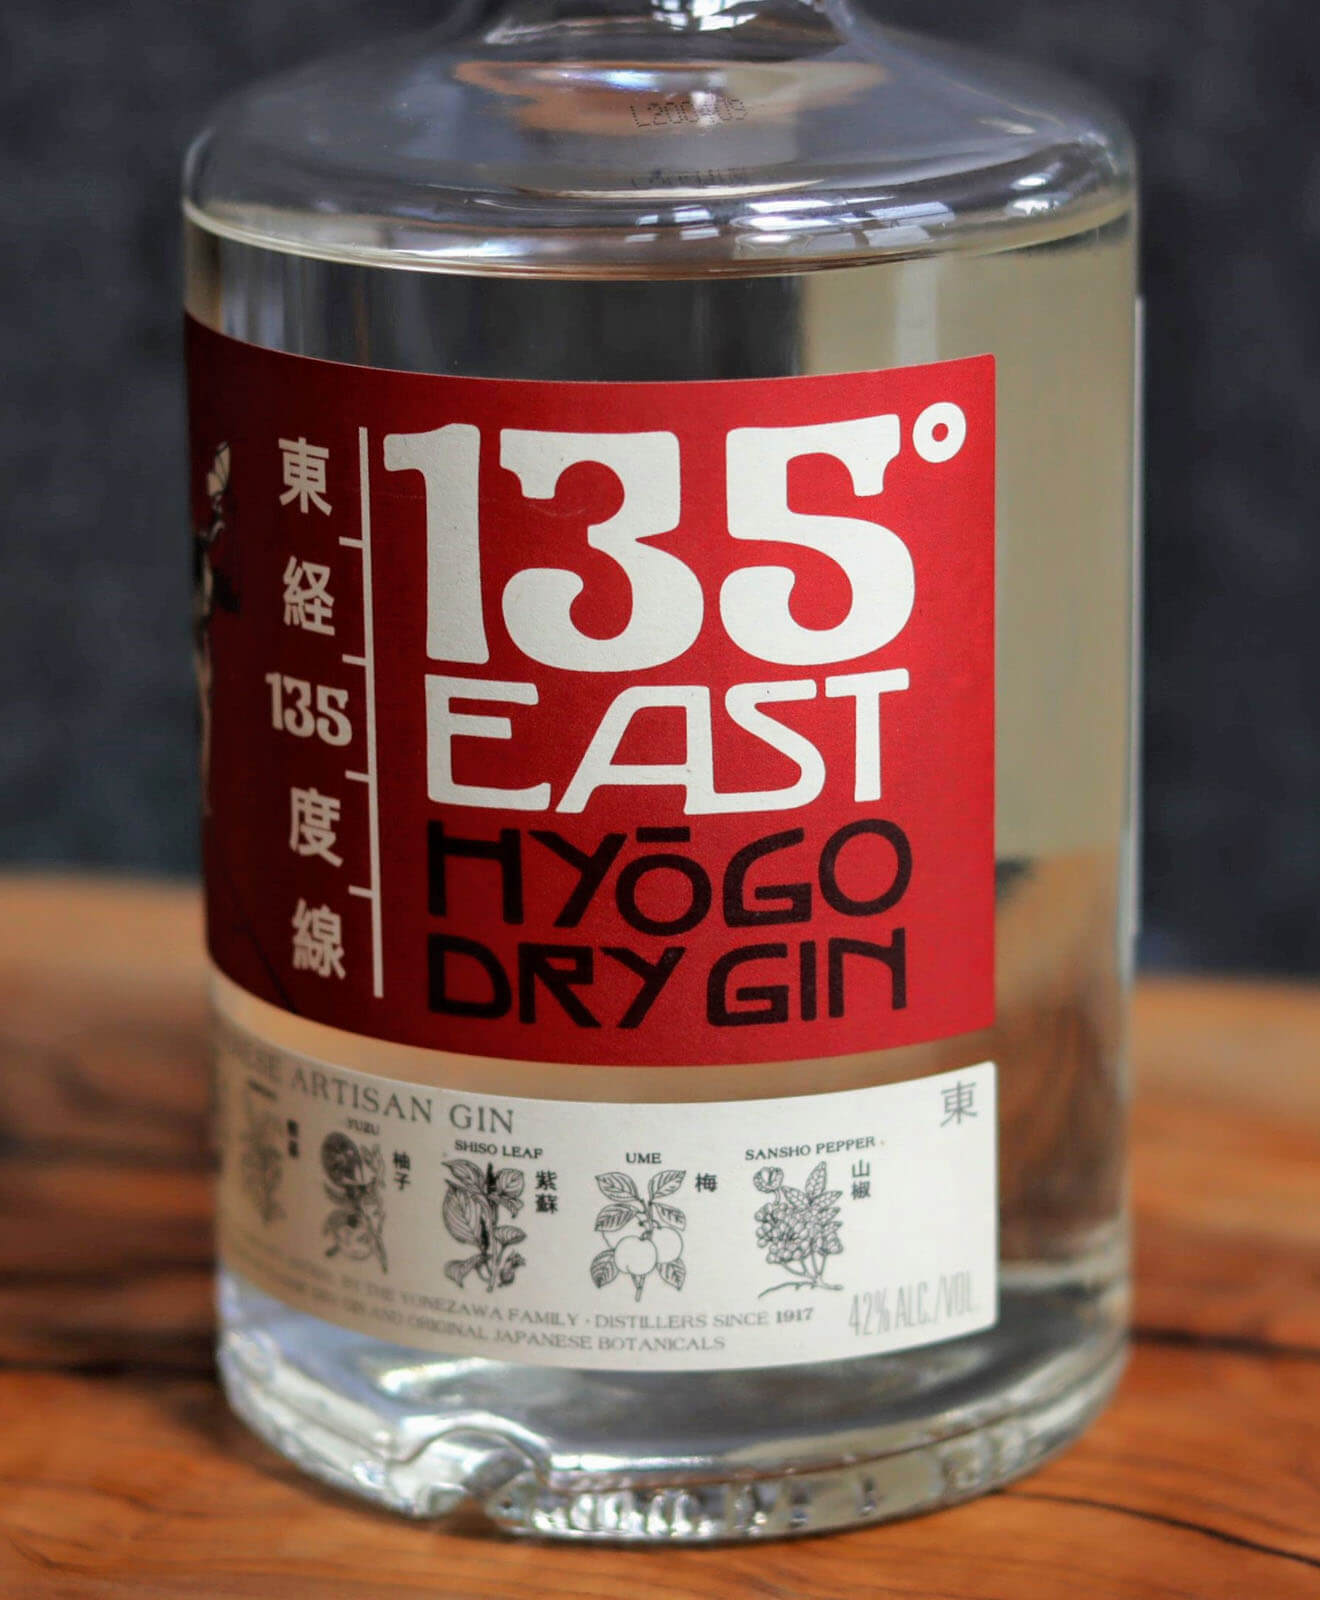 135 East Ginm bottle on table